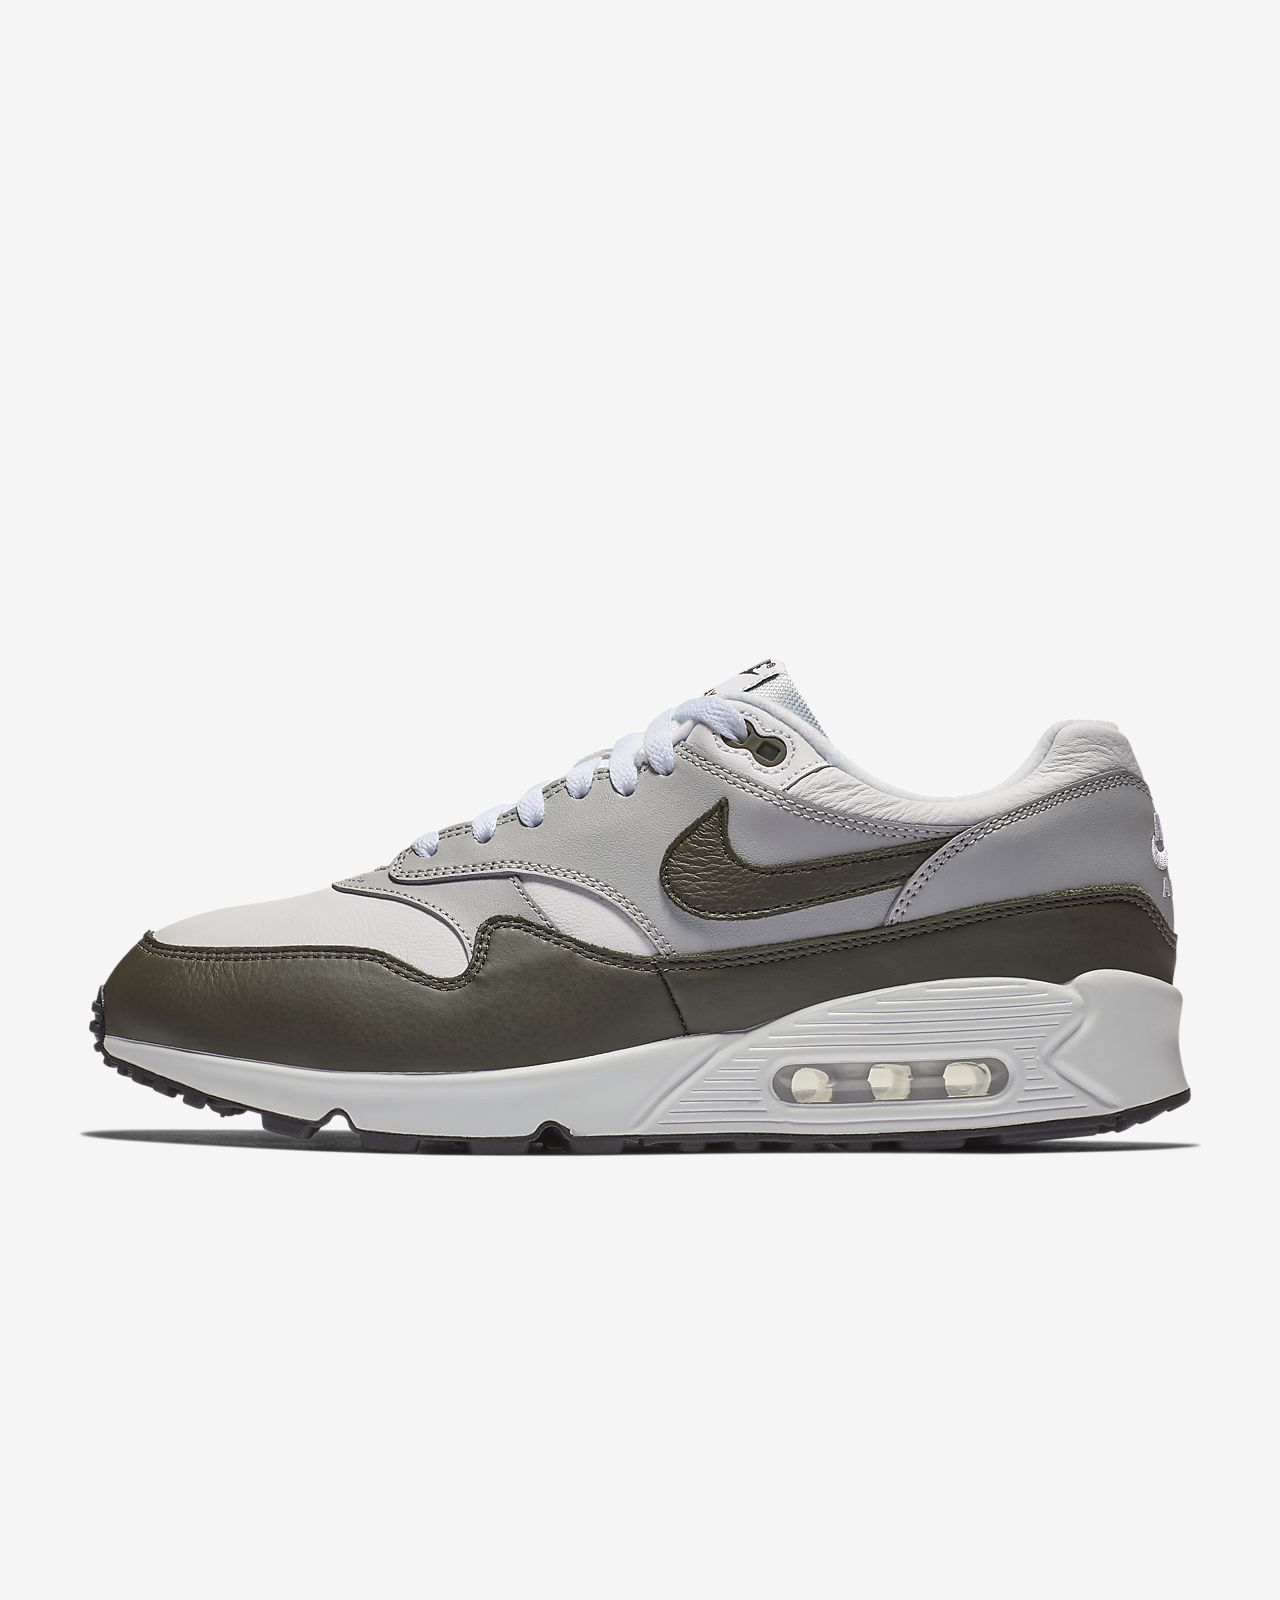 the latest c9c5a 62aed Nike Air Max 90 1